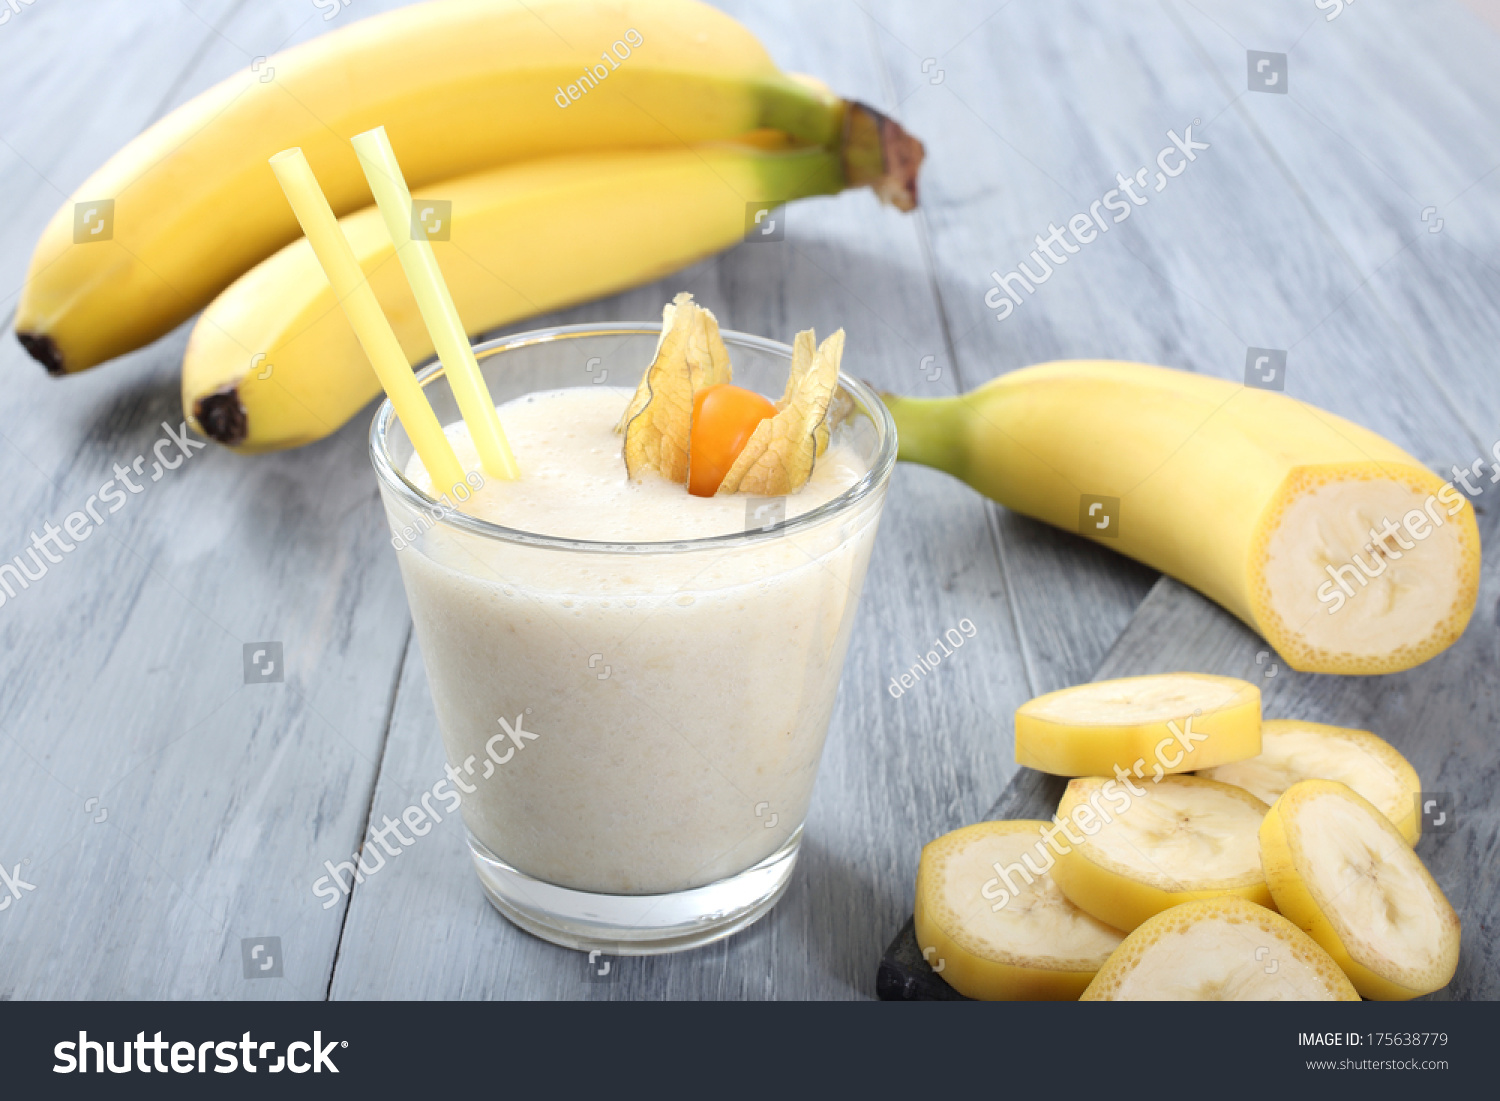 how to make banana smoothie with milk